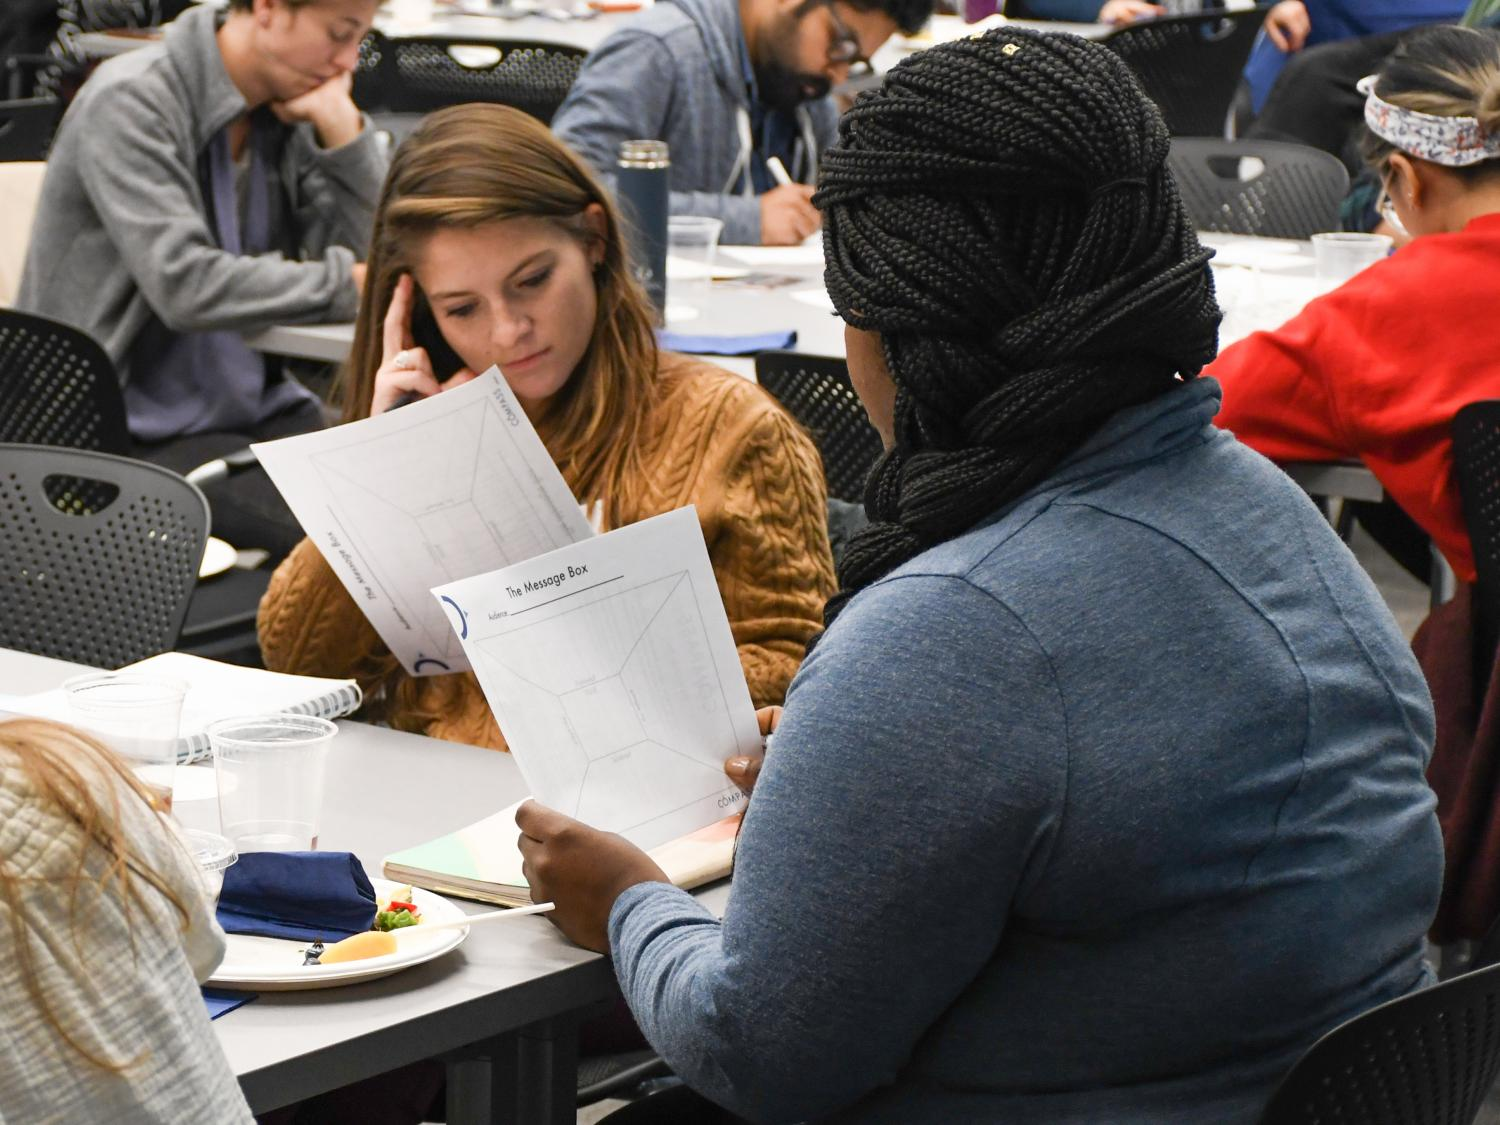 Graduate students review their message box tool during a science communication workshop in 2019.